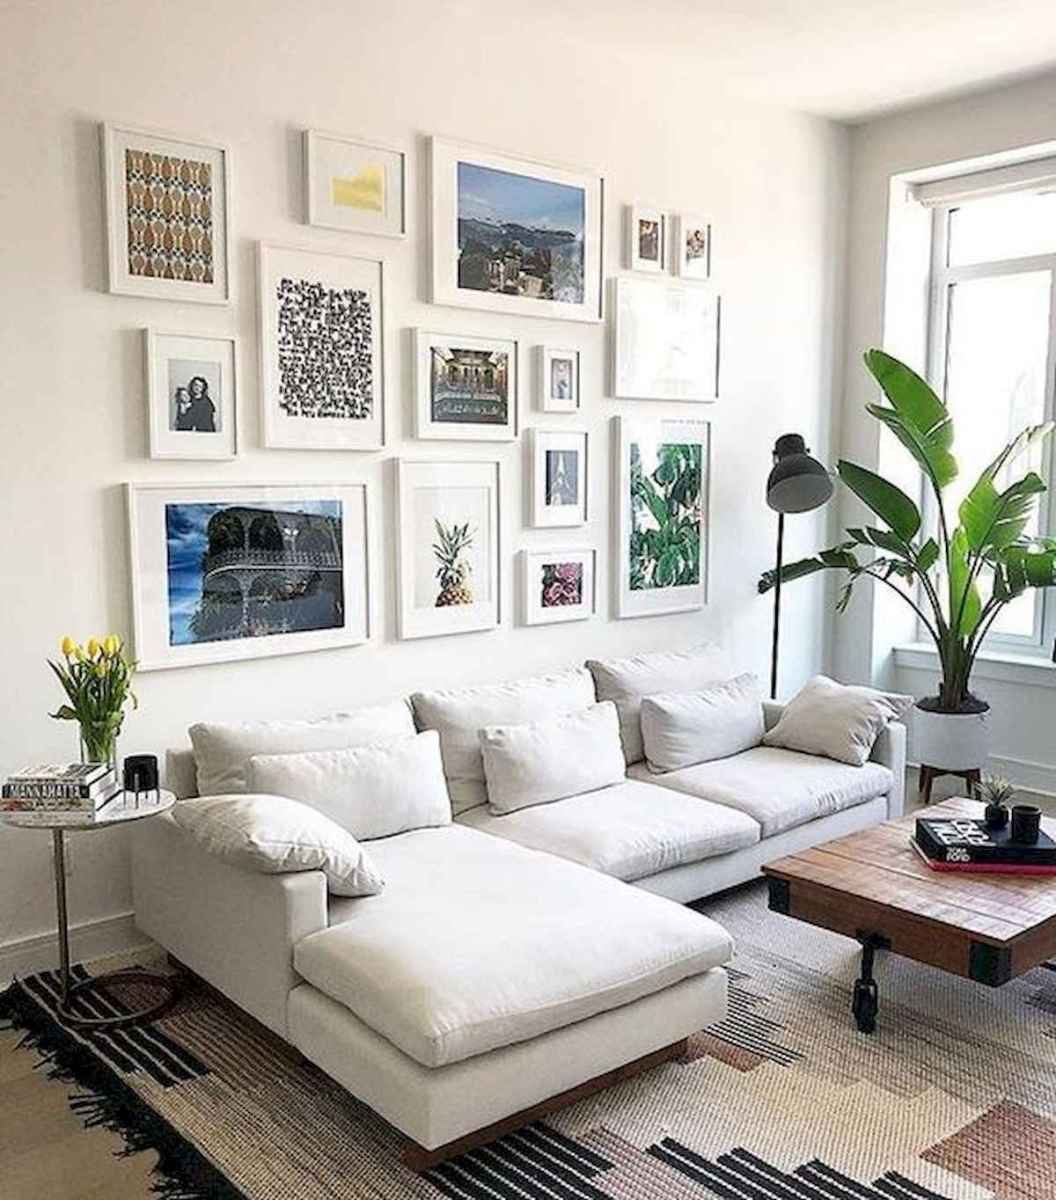 50+ Genius Small Living Room Decor Ideas And Remodel for Your First Apartment (15)